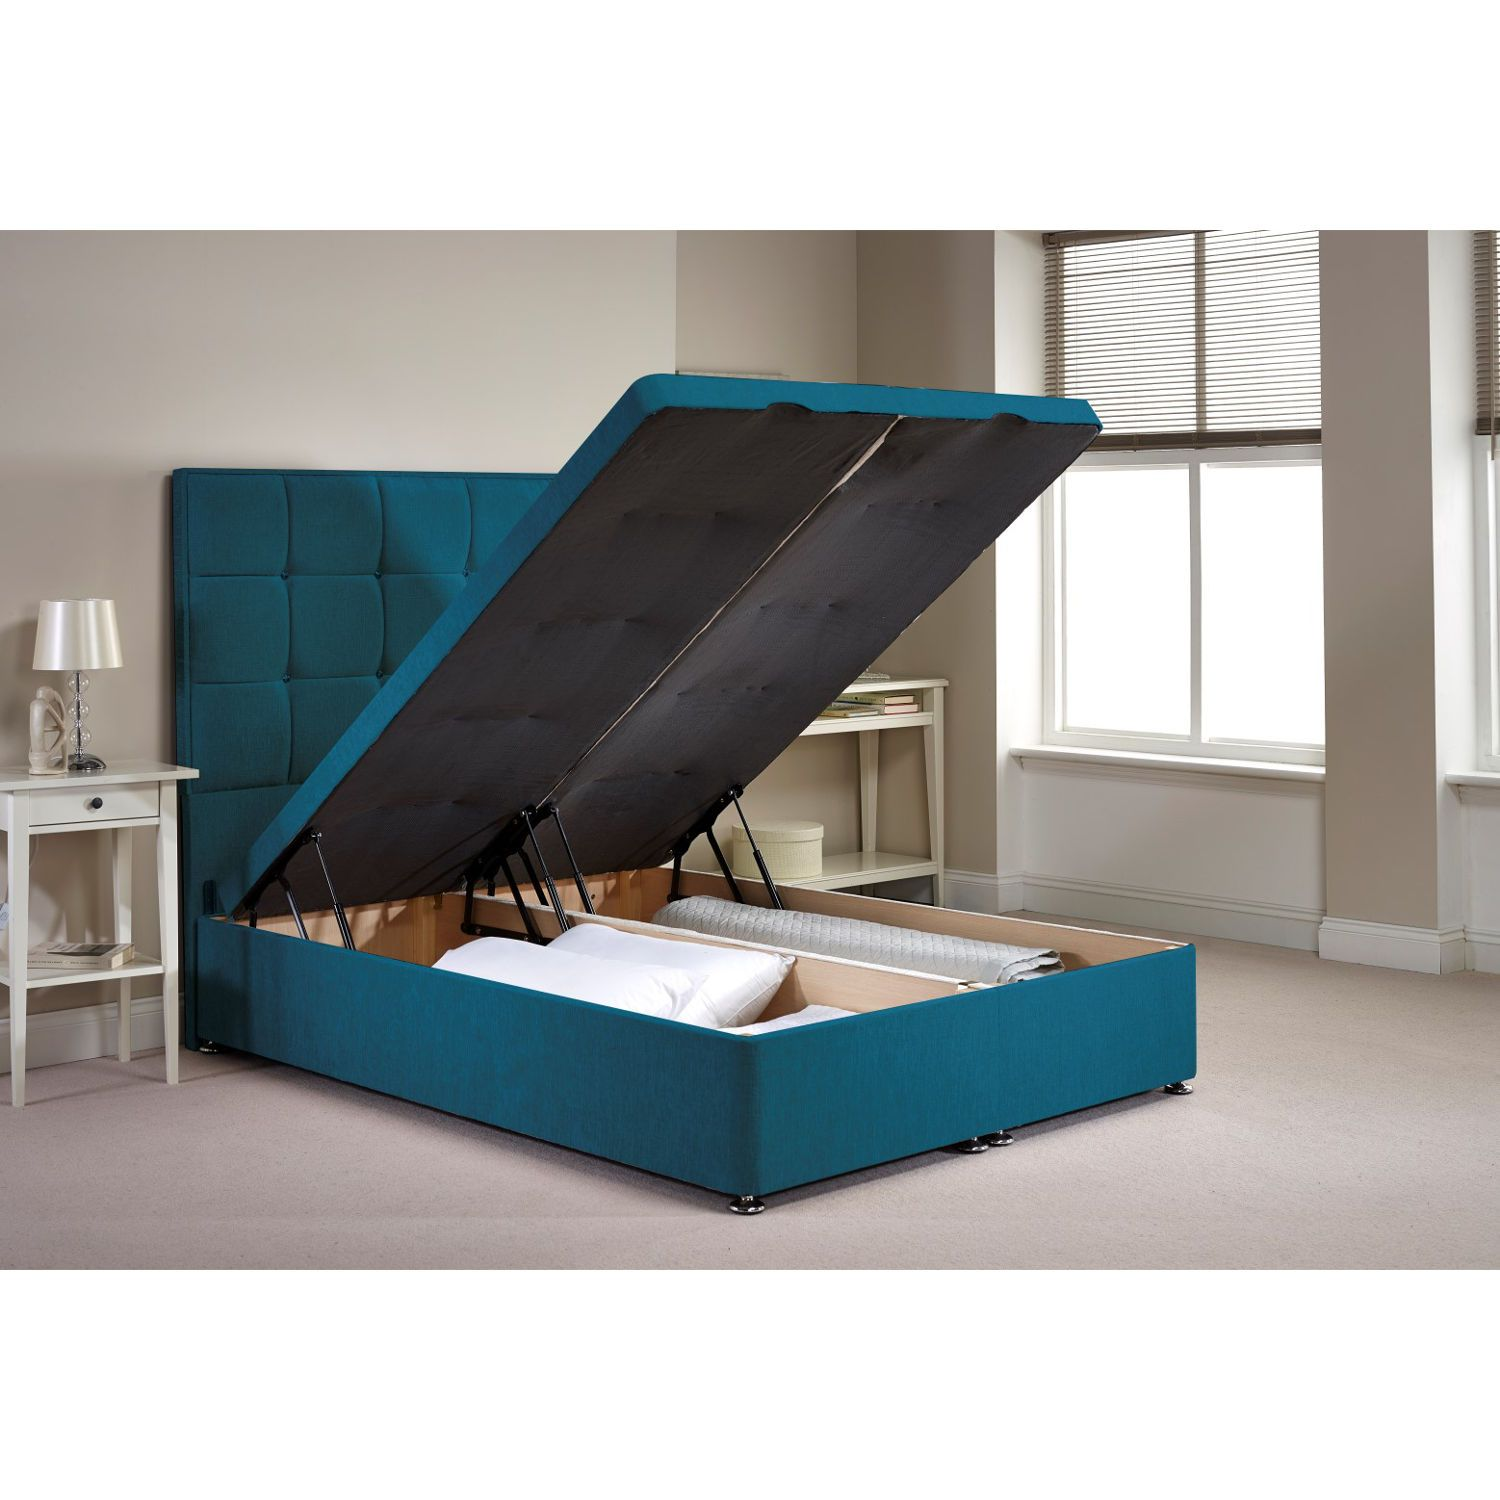 Divan Beds Cheap Appian Ottoman Divan Bed Frame Teal Chenille Fabric Super King 6ft